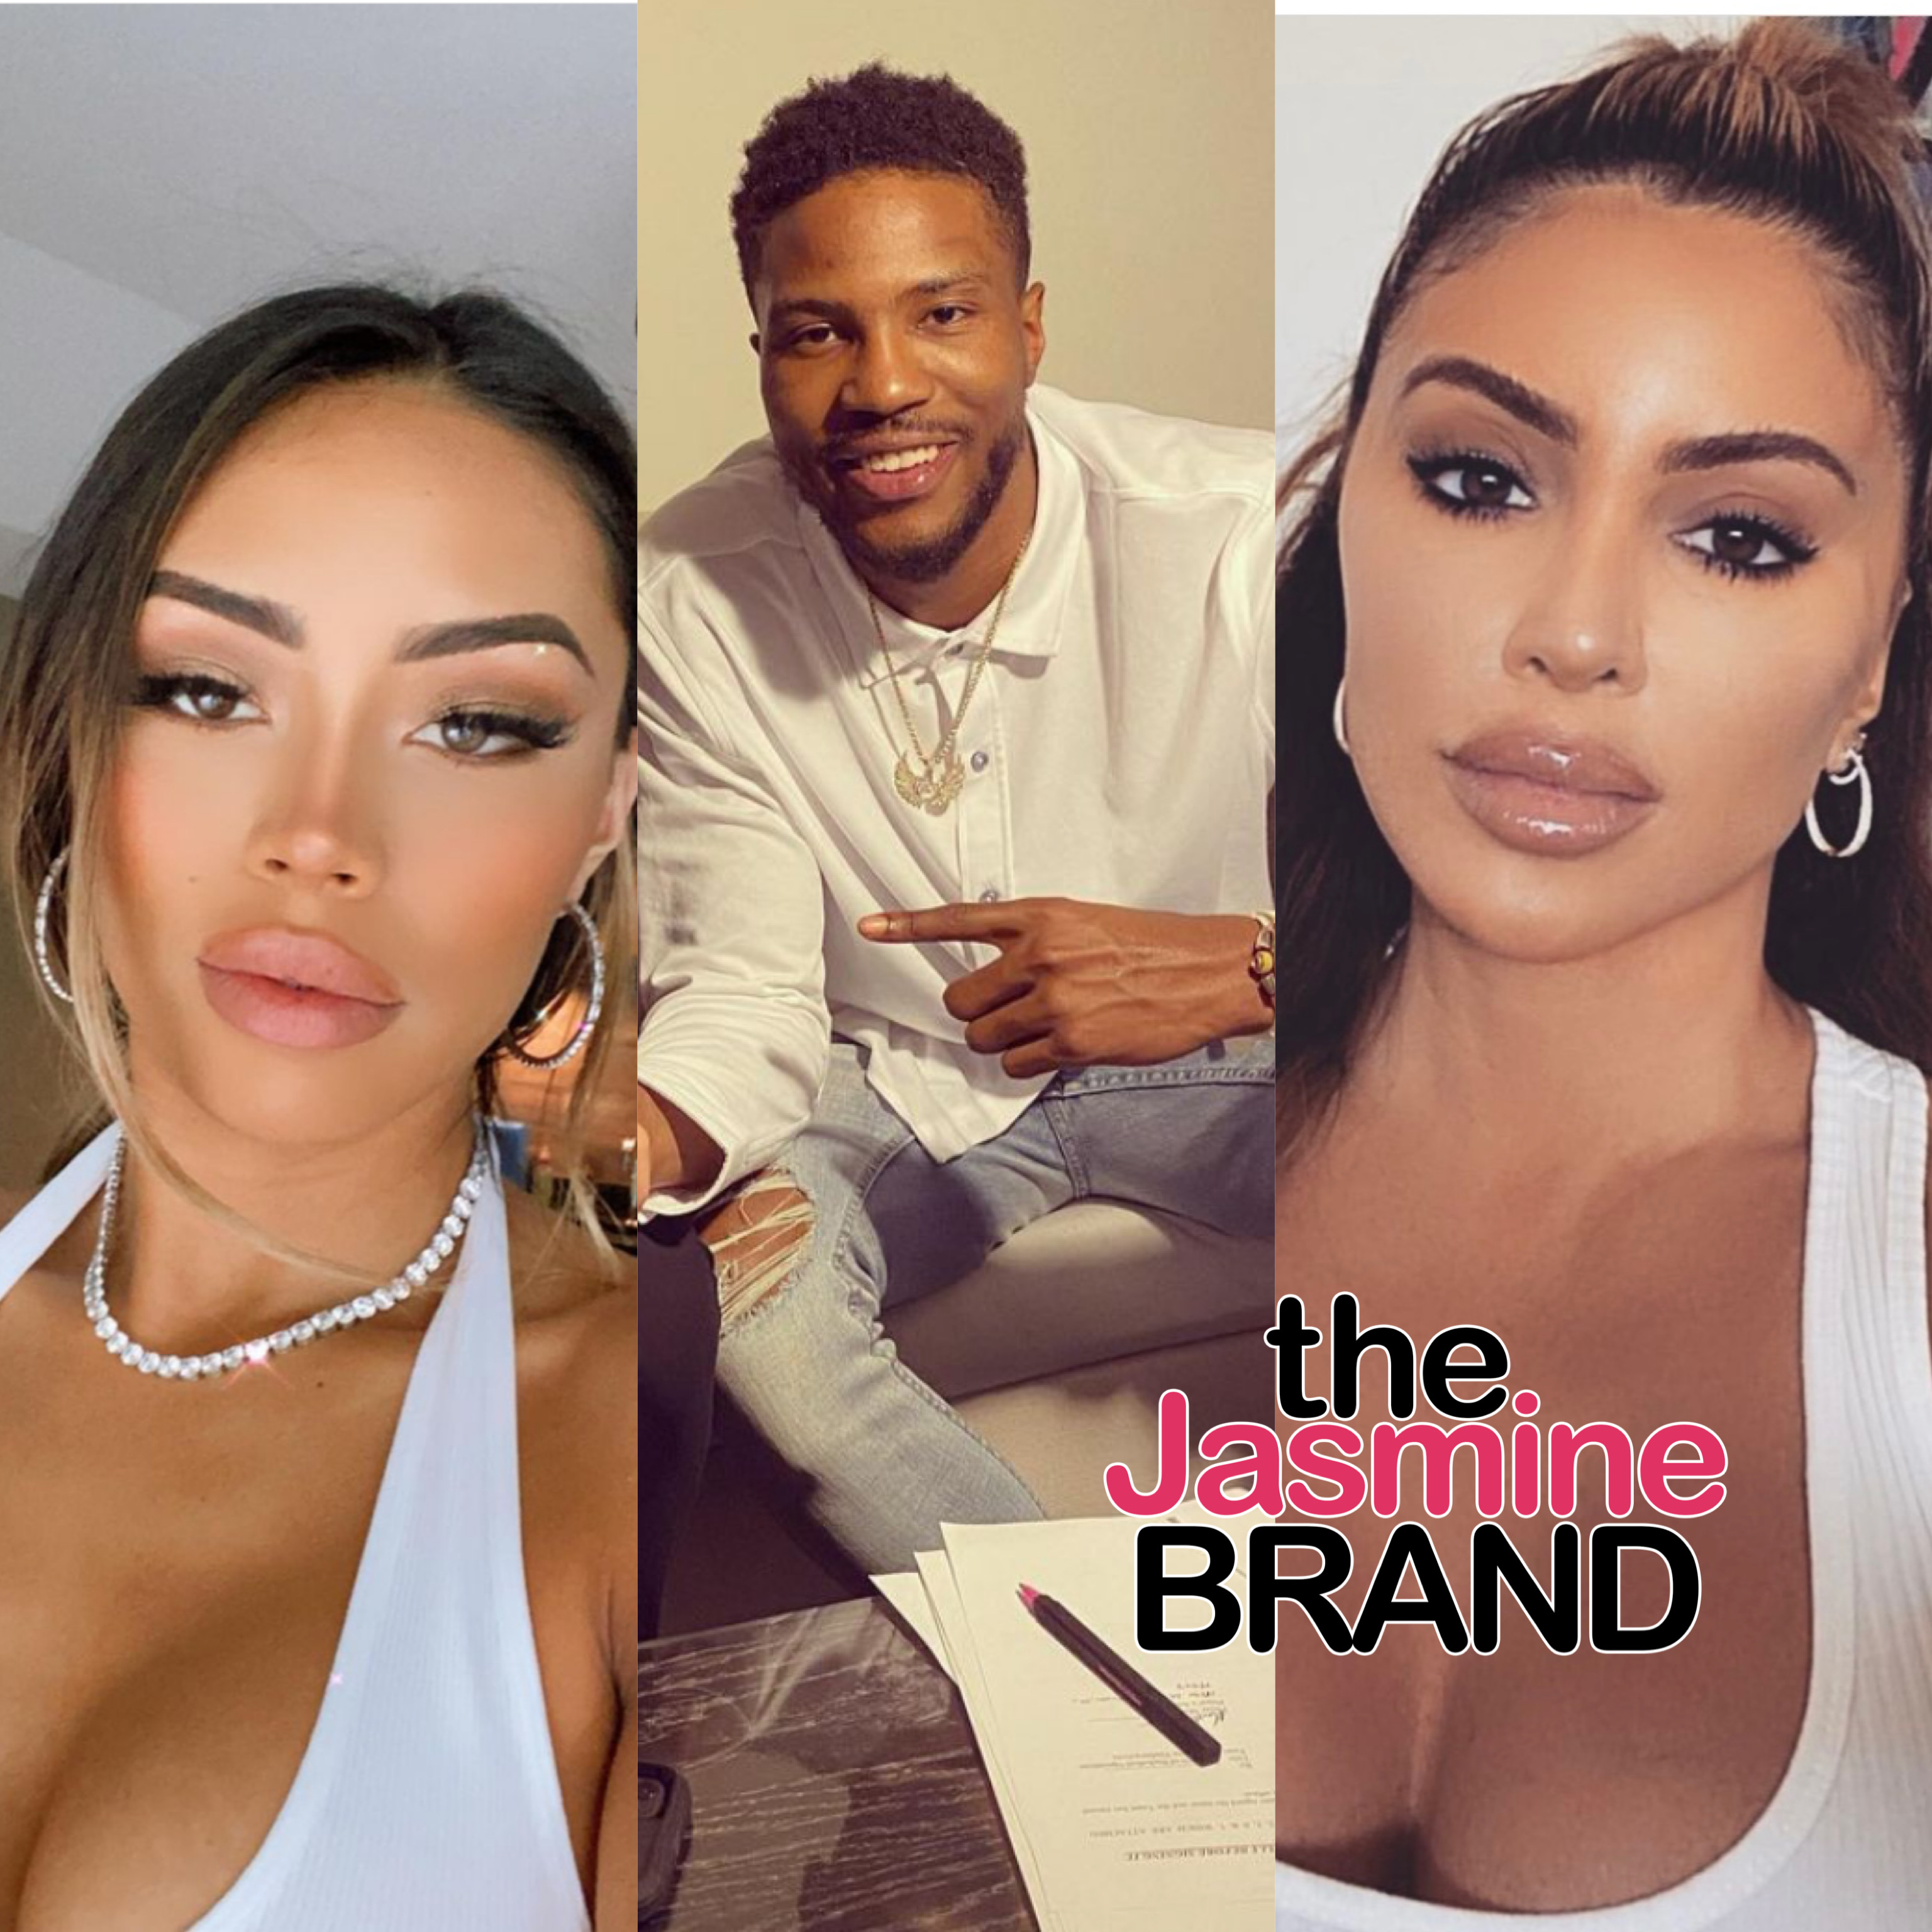 Nba Player Malik Beasley S Wife Montana Yao Files For Divorce Amid Larsa Pippen Controversey Thejasminebrand Listen to montana | soundcloud is an audio platform that lets you listen to what you love and share the sounds you create. nba player malik beasley s wife montana